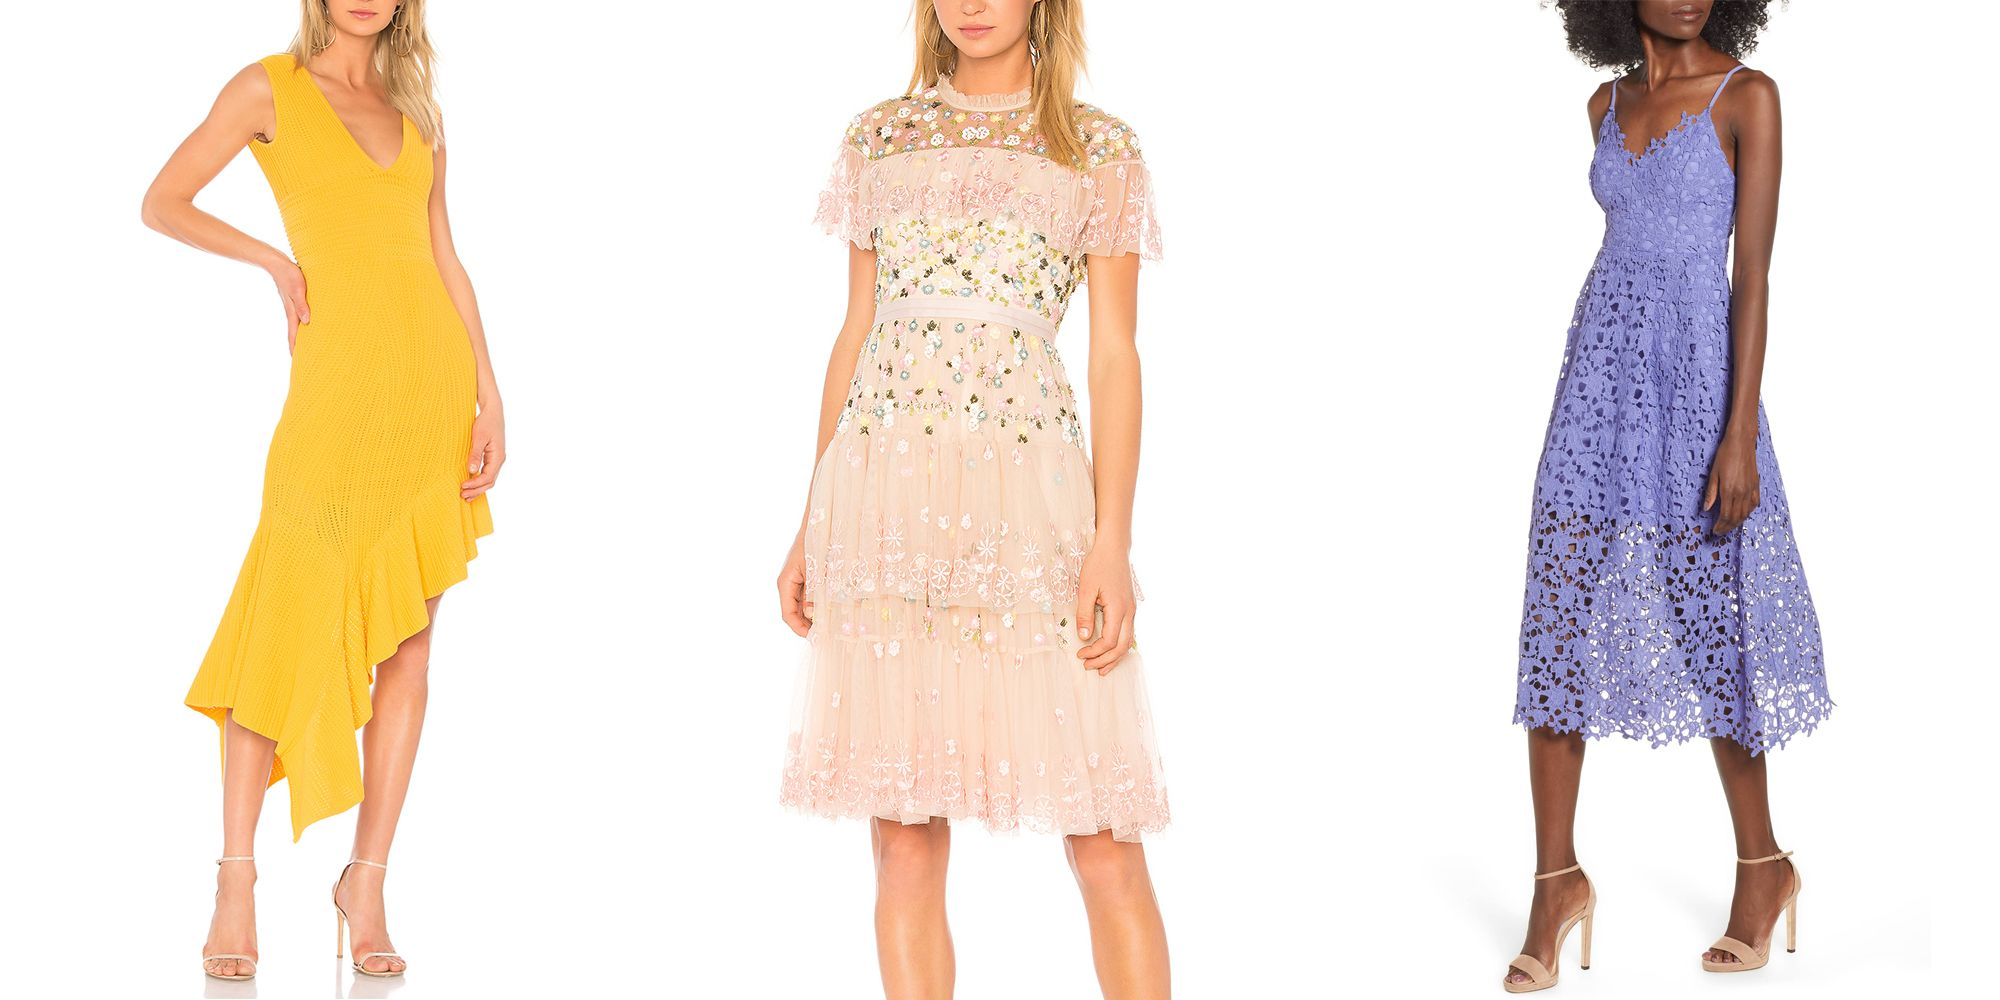 22 Chic Spring Wedding Guest Dresses What To Wear To A Spring 2019